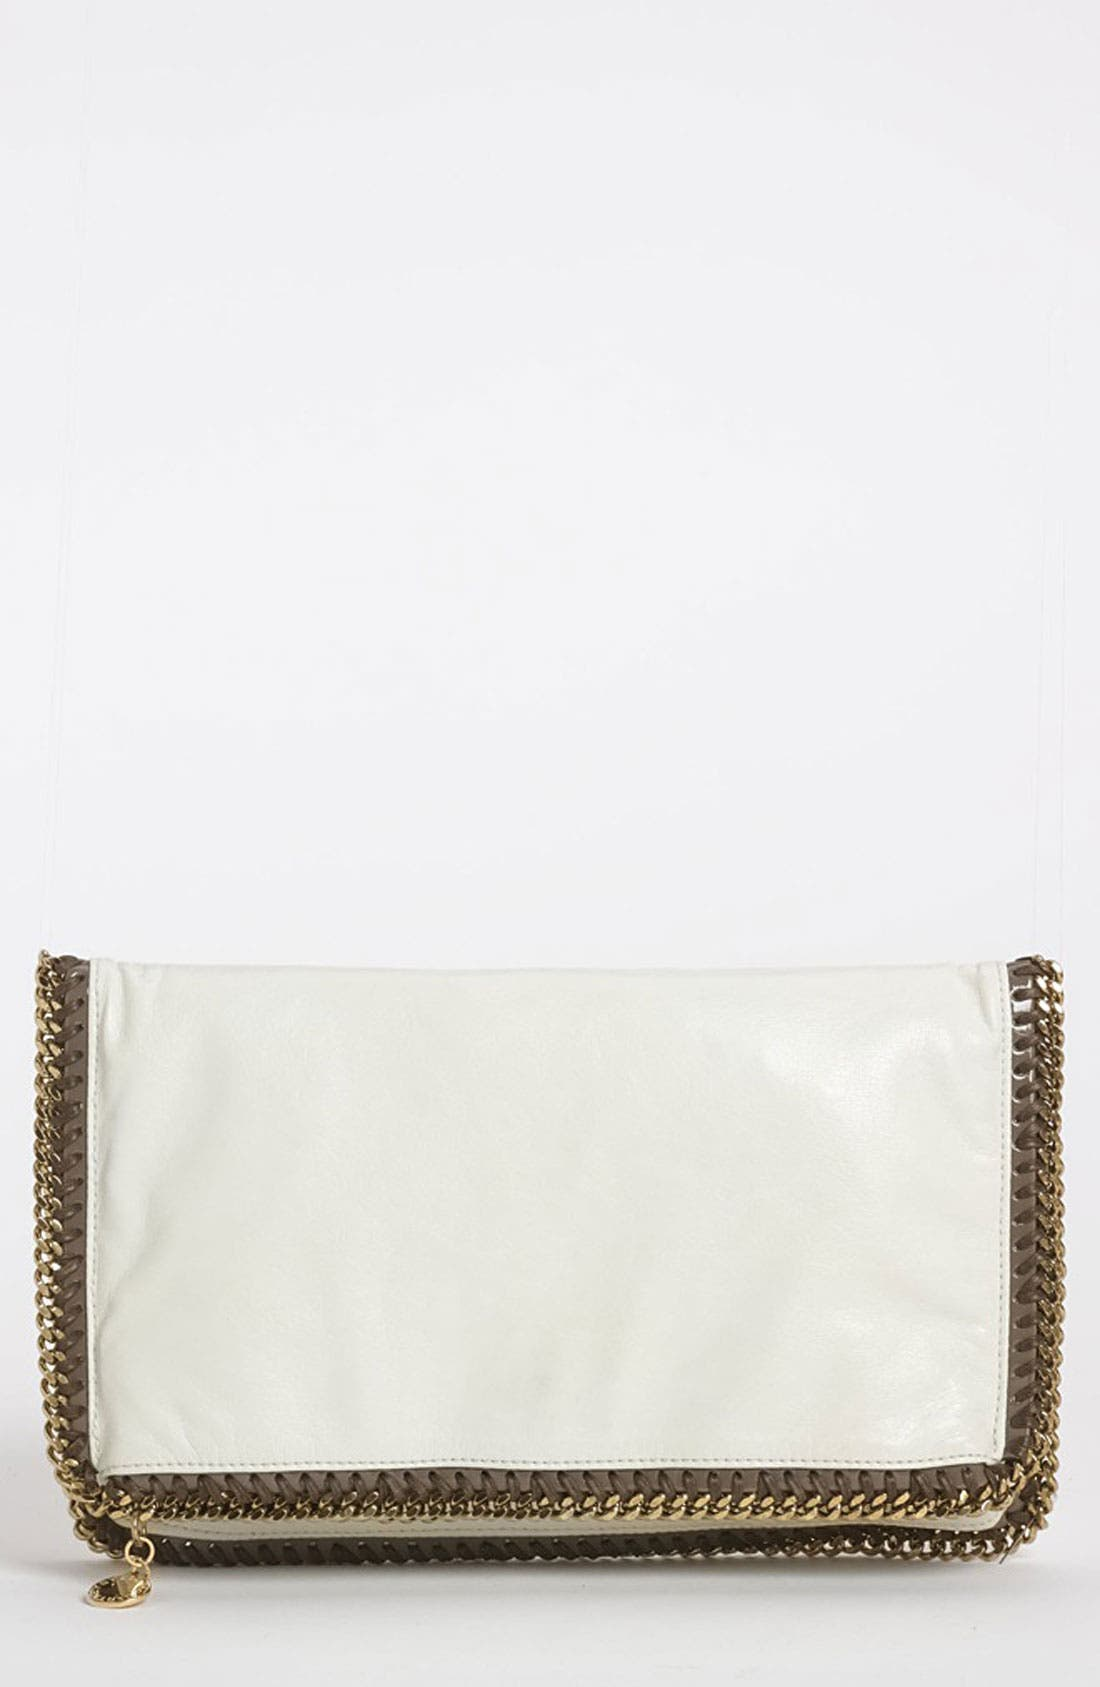 Alternate Image 1 Selected - Stella McCartney 'Falabella - Galway' Clutch